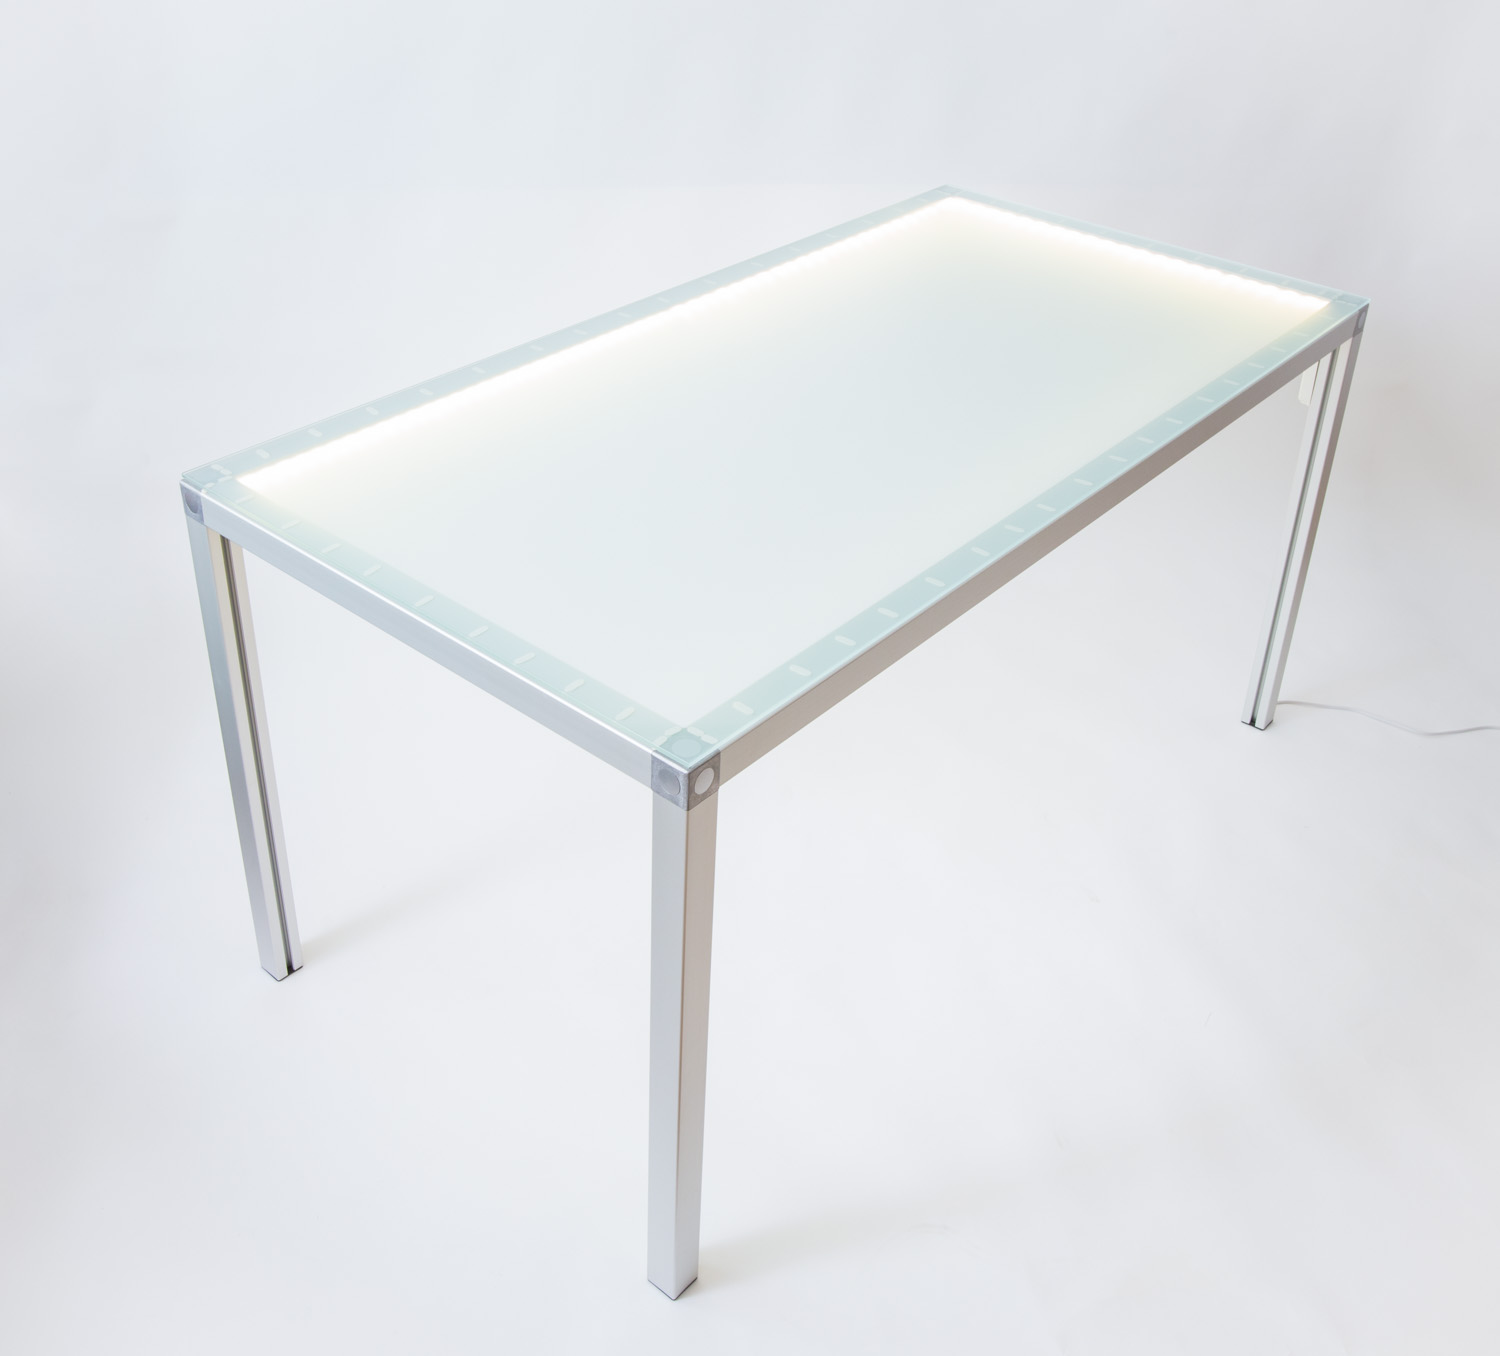 Glas Tisch Led Glastisch Christian Lendl 39s Blog